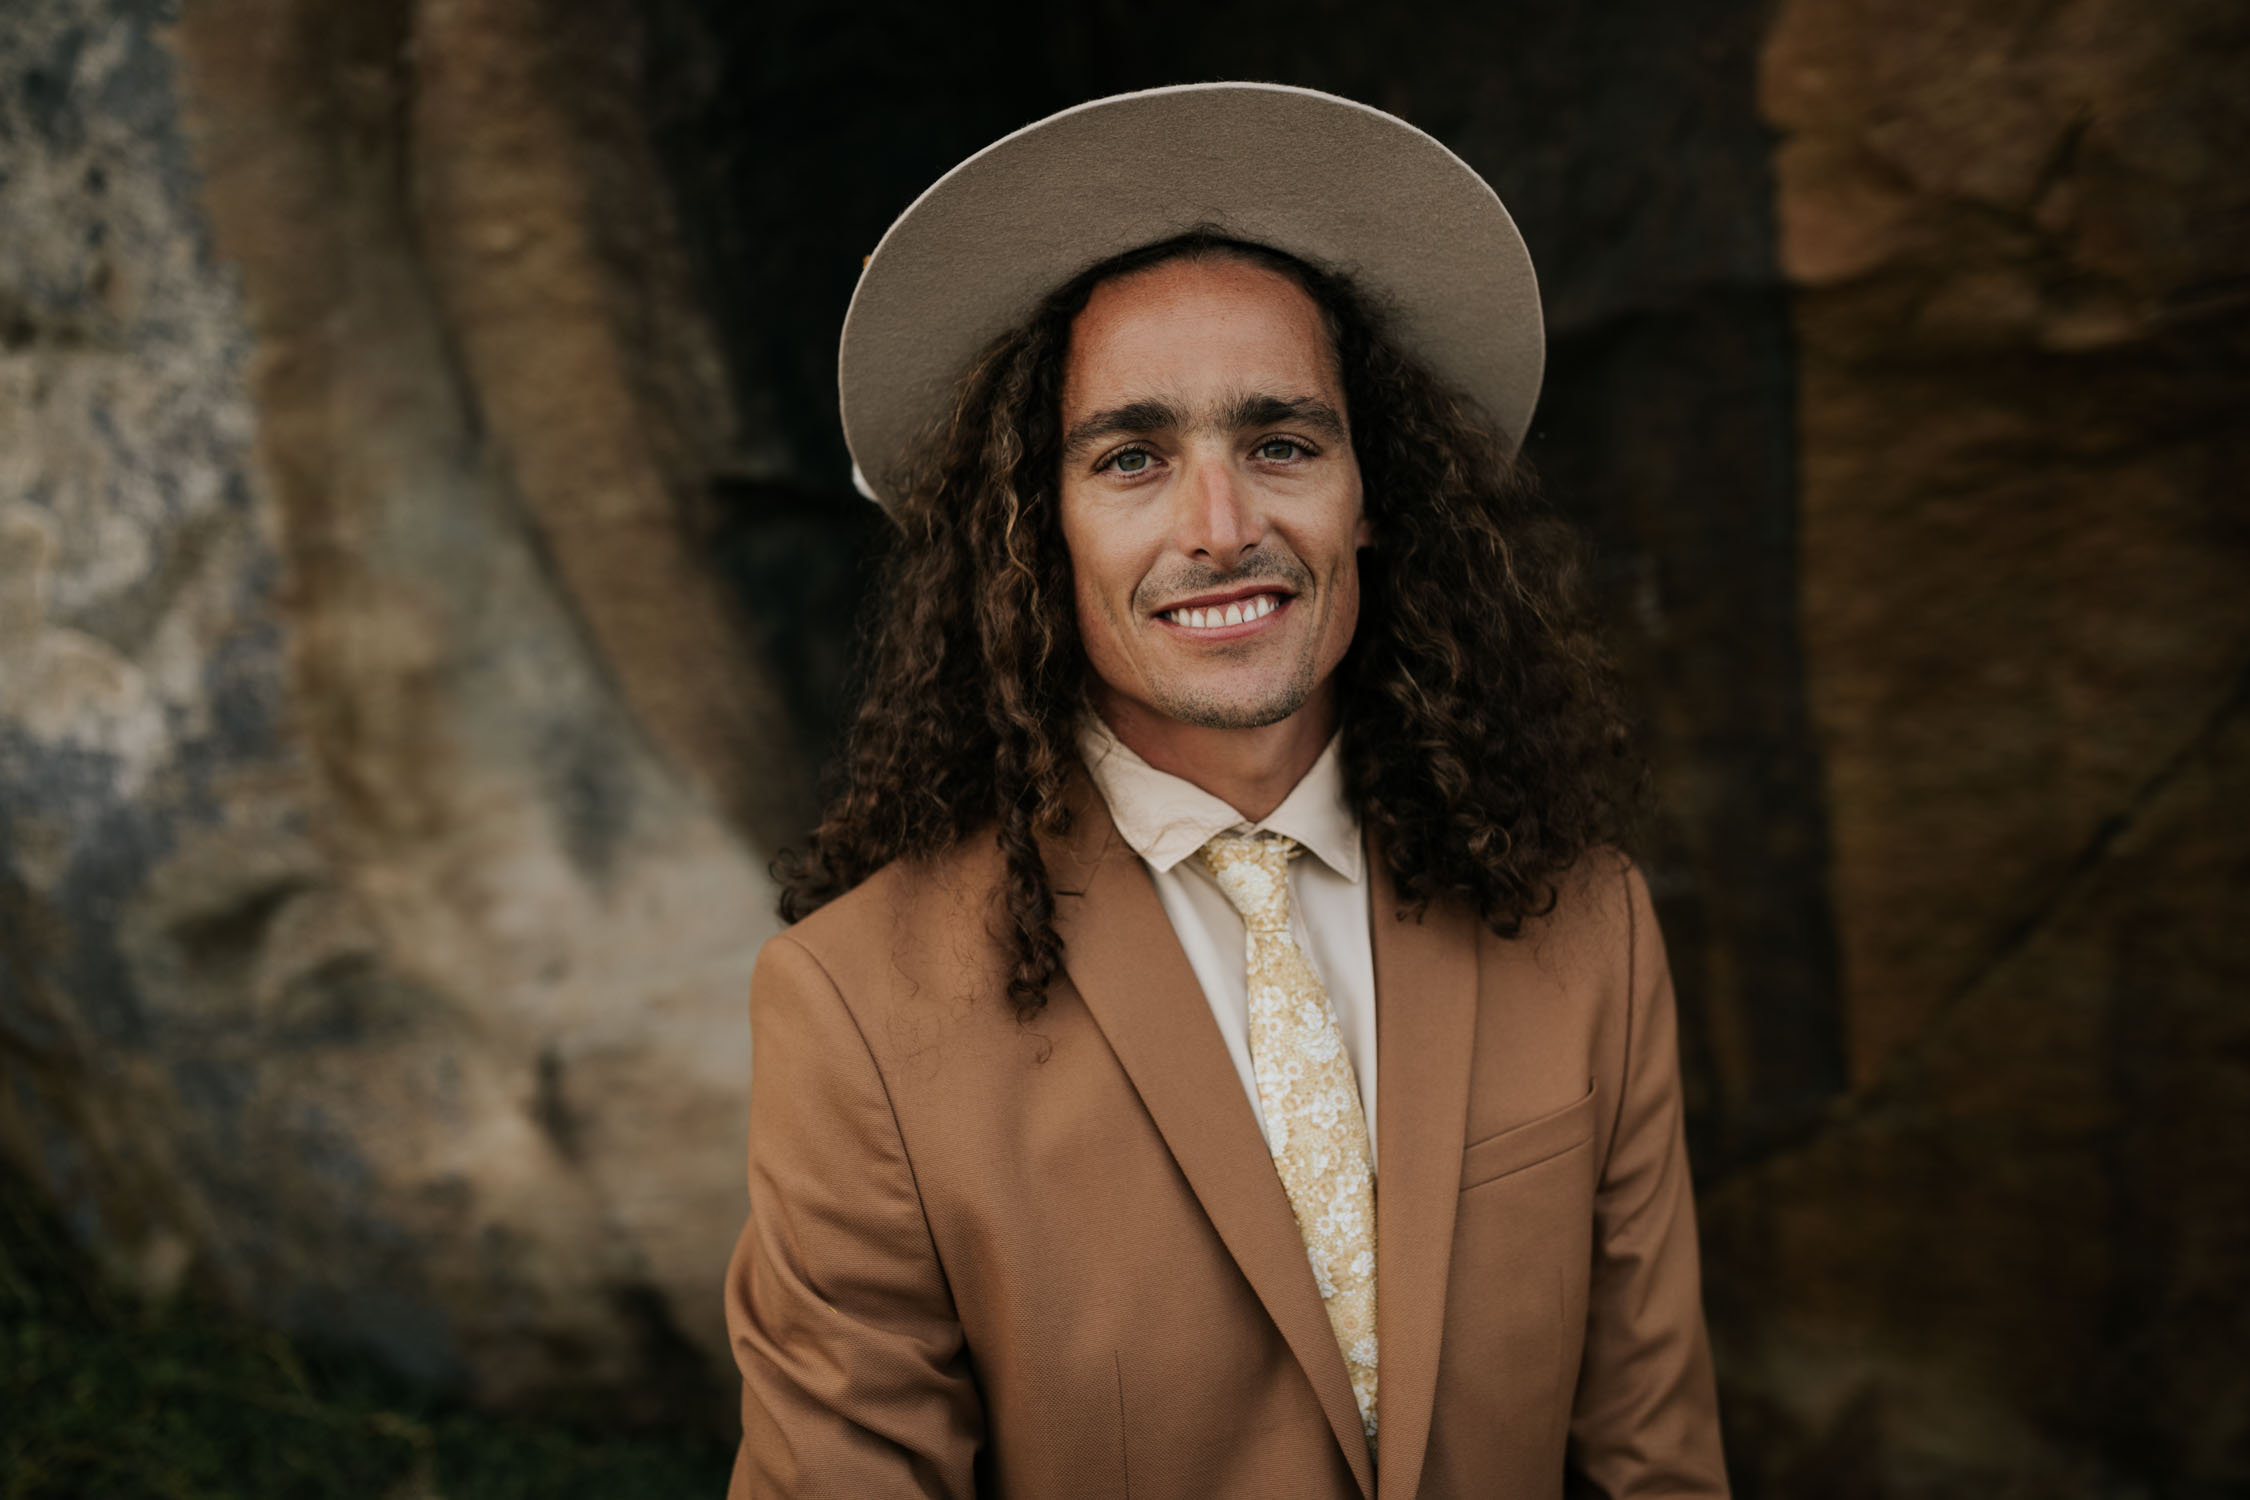 Bohemian wedding portrait of groom with long curly hair wears brown suite, beige shirt and felt hat